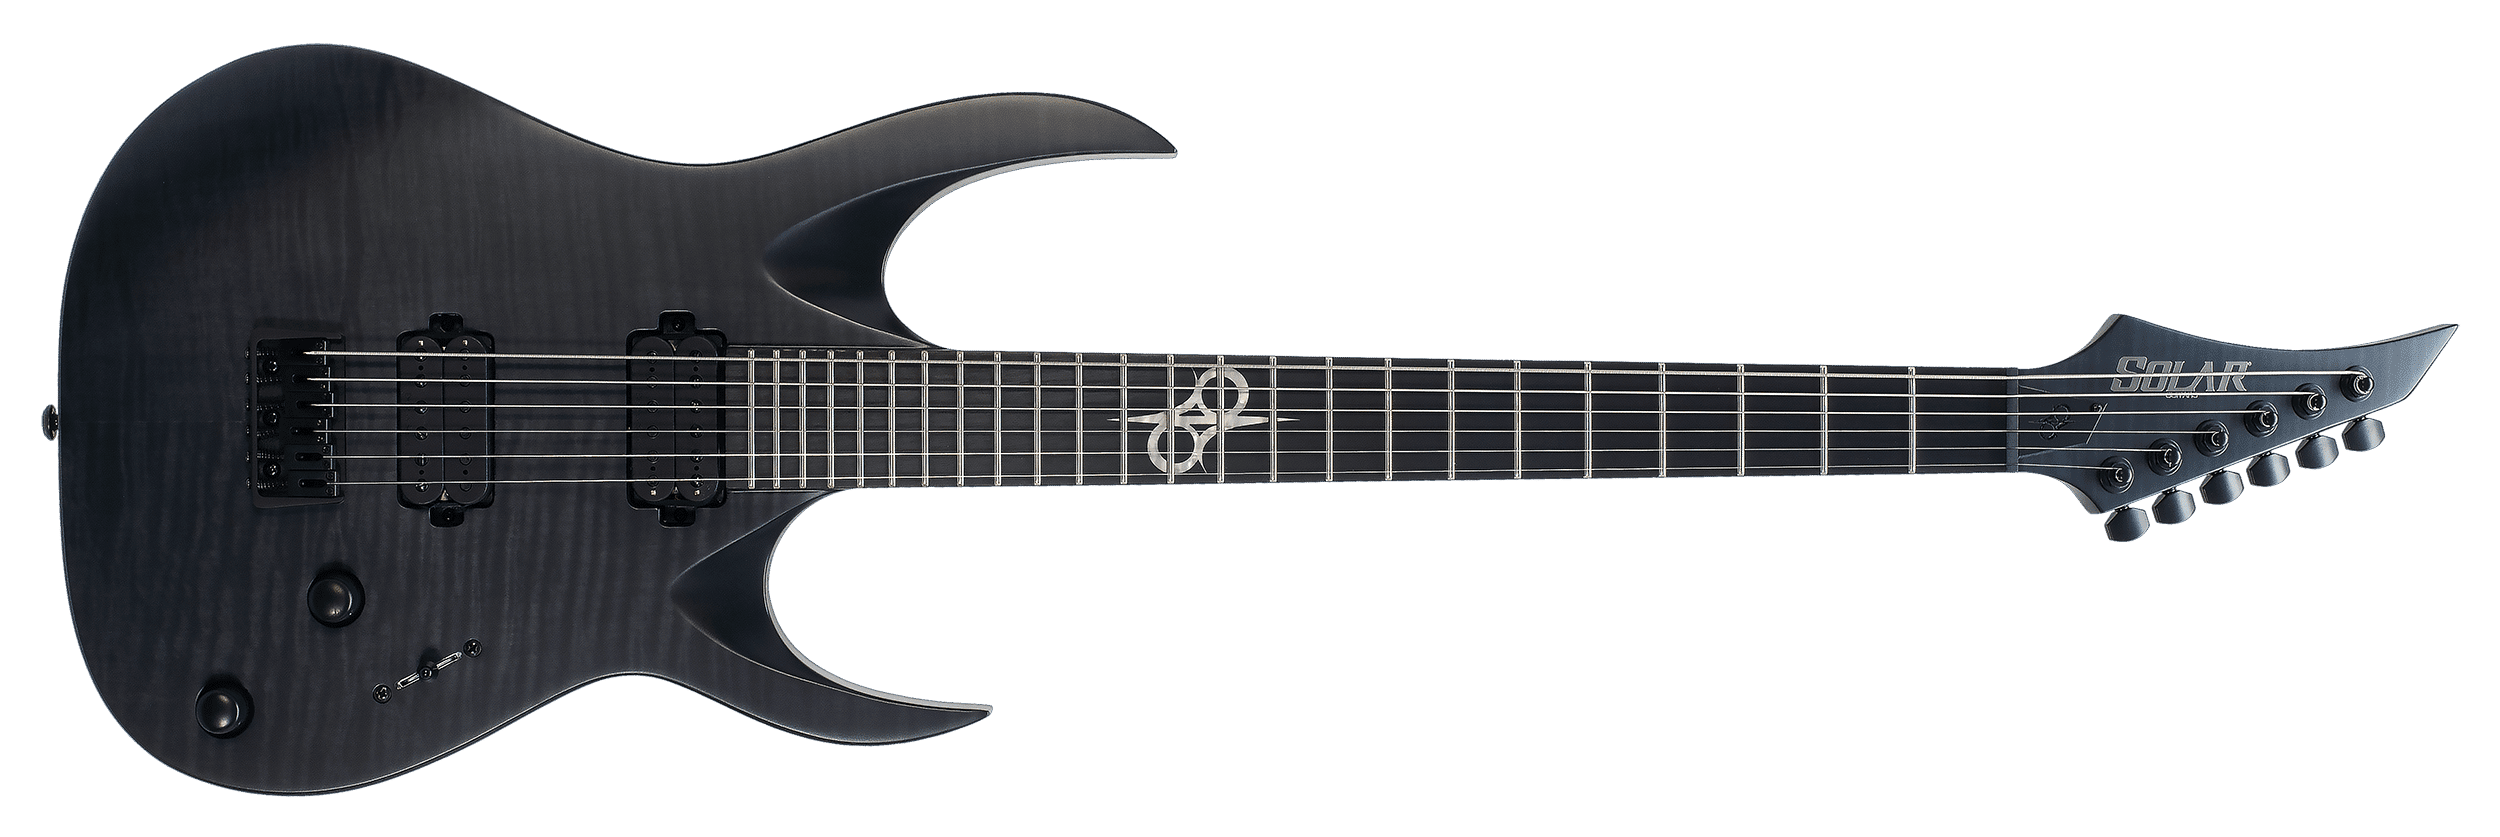 Solar Guitars A2.6FB BARITONE